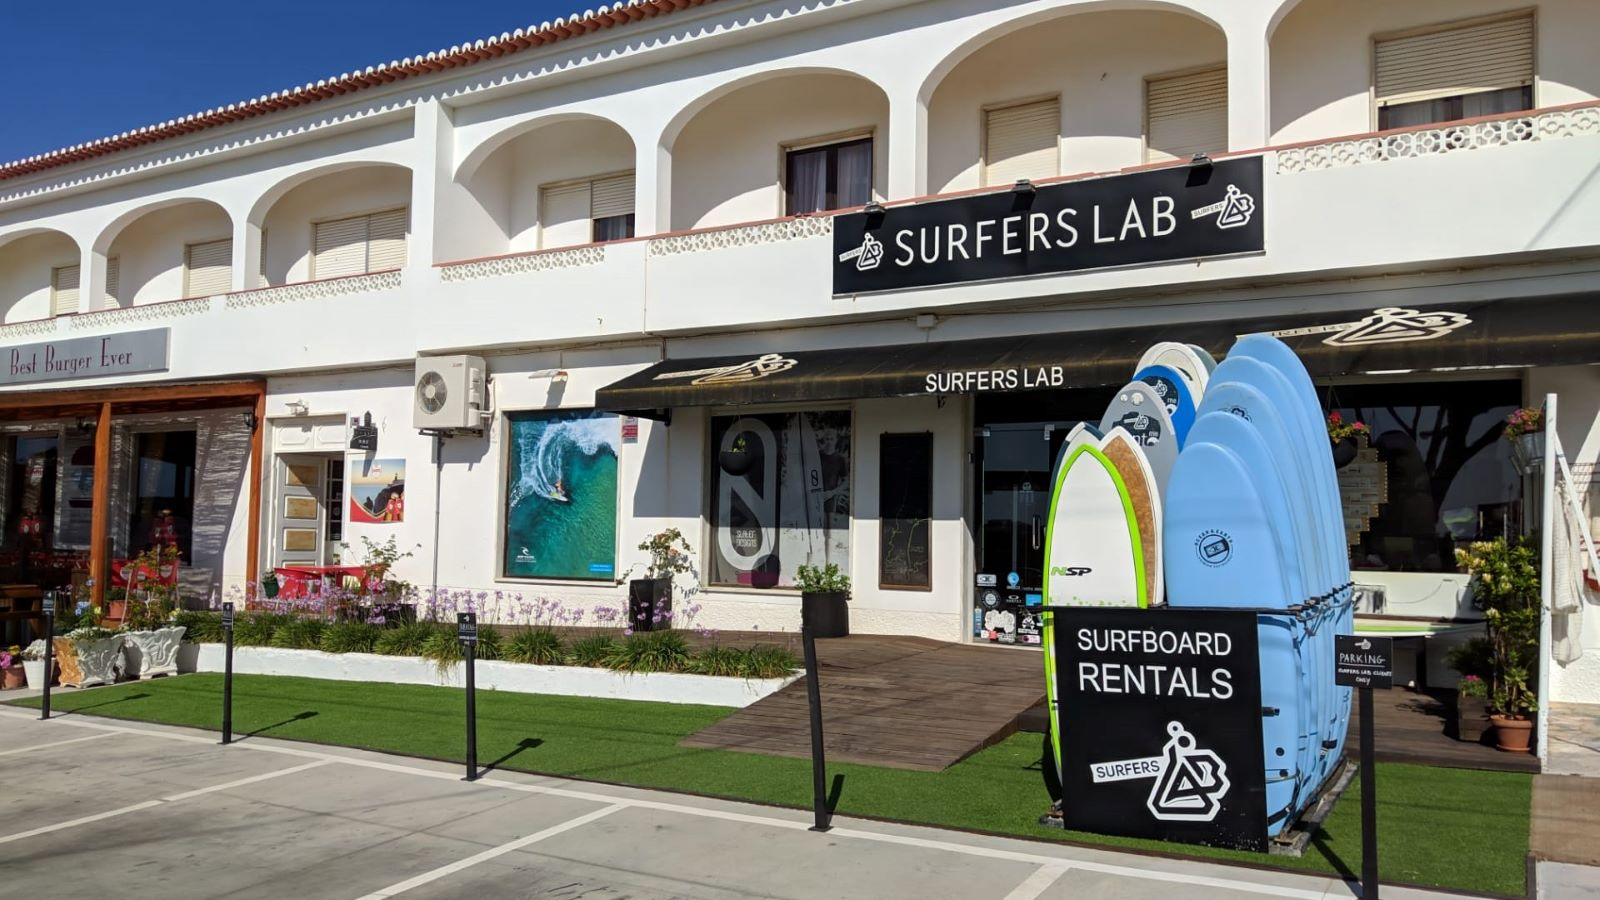 Surfers Lab store front